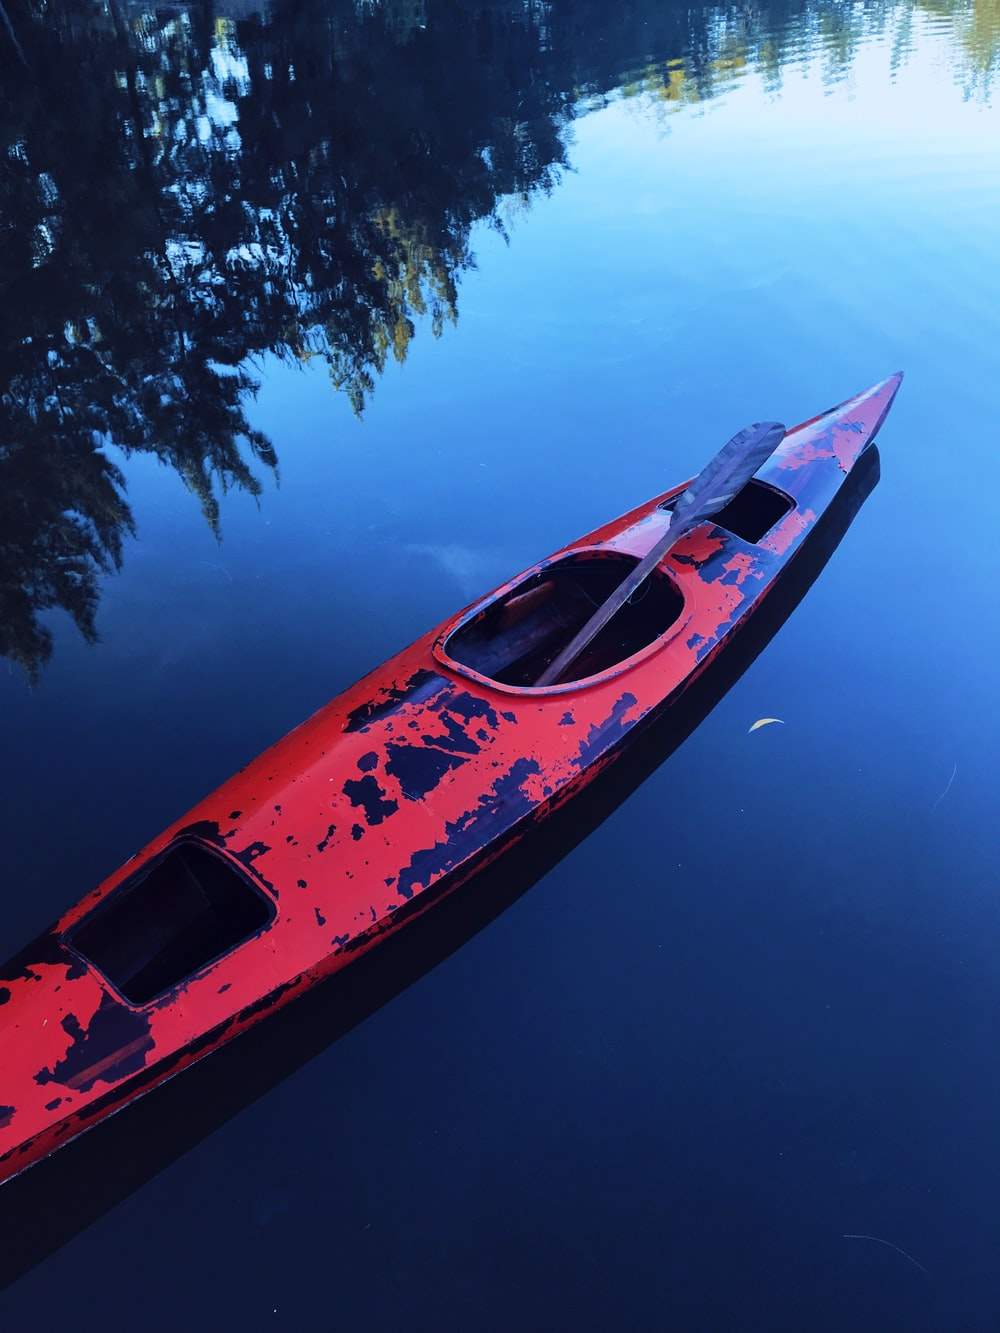 red canoe pn water